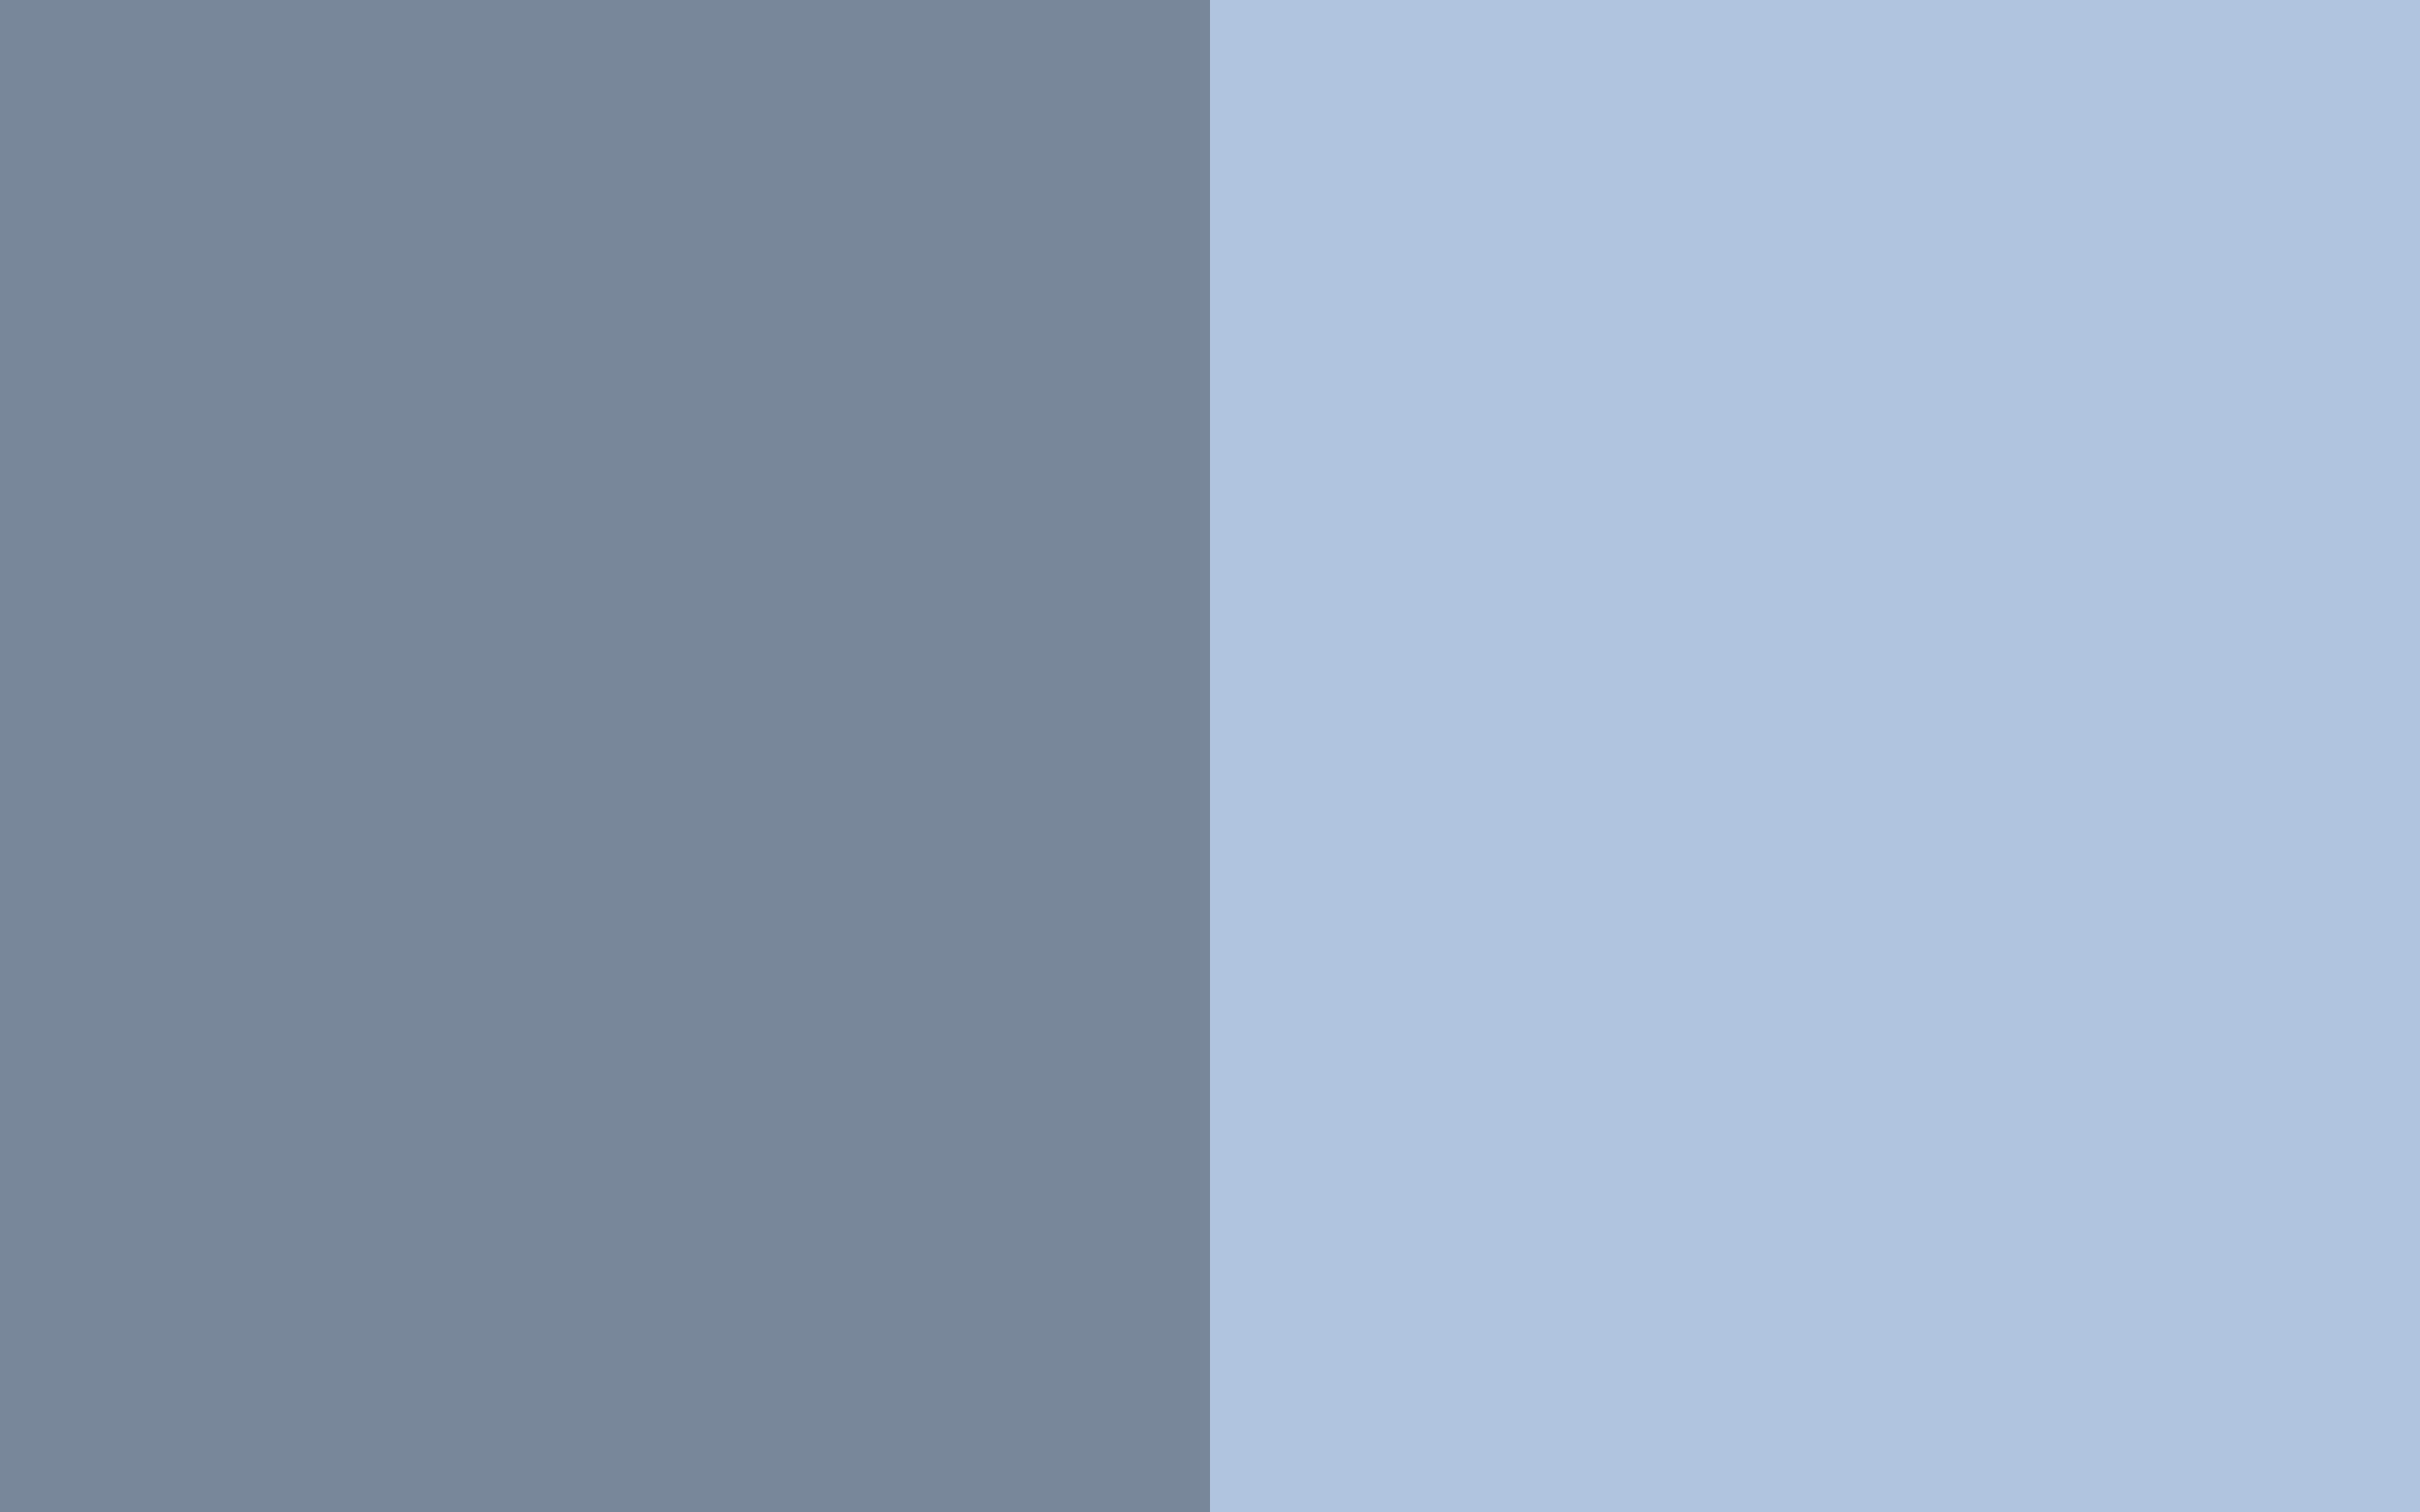 grey and blue aesthetic wallpapers